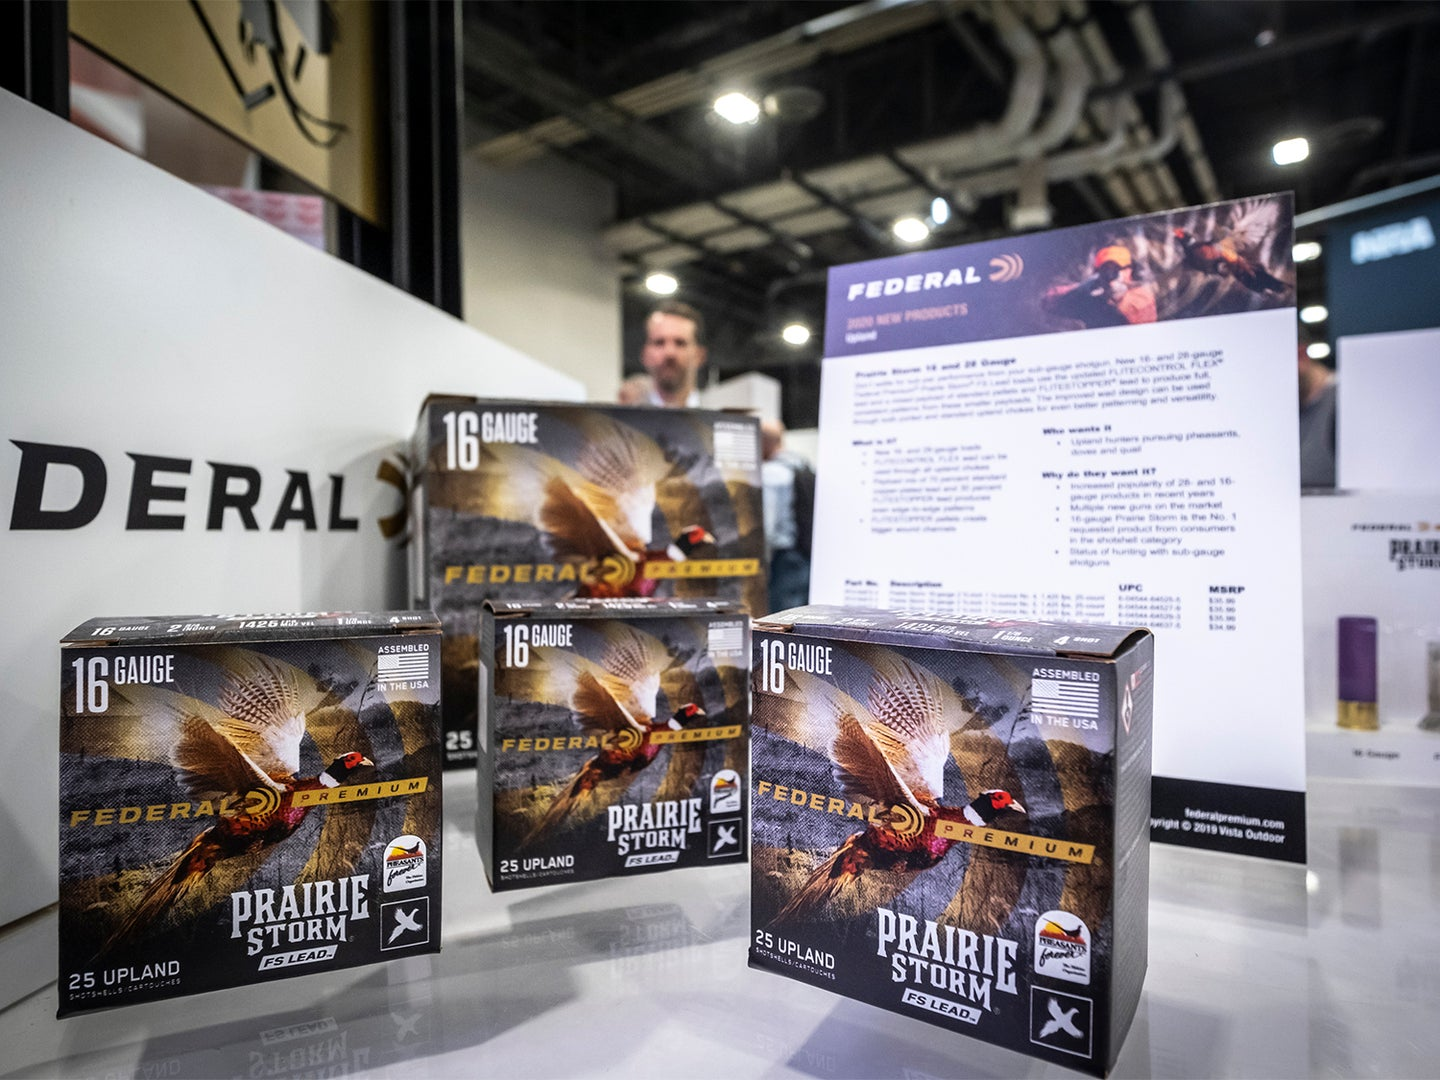 Boxes of Federal Premium ammo stacked on tables at the SHOT Show convention.